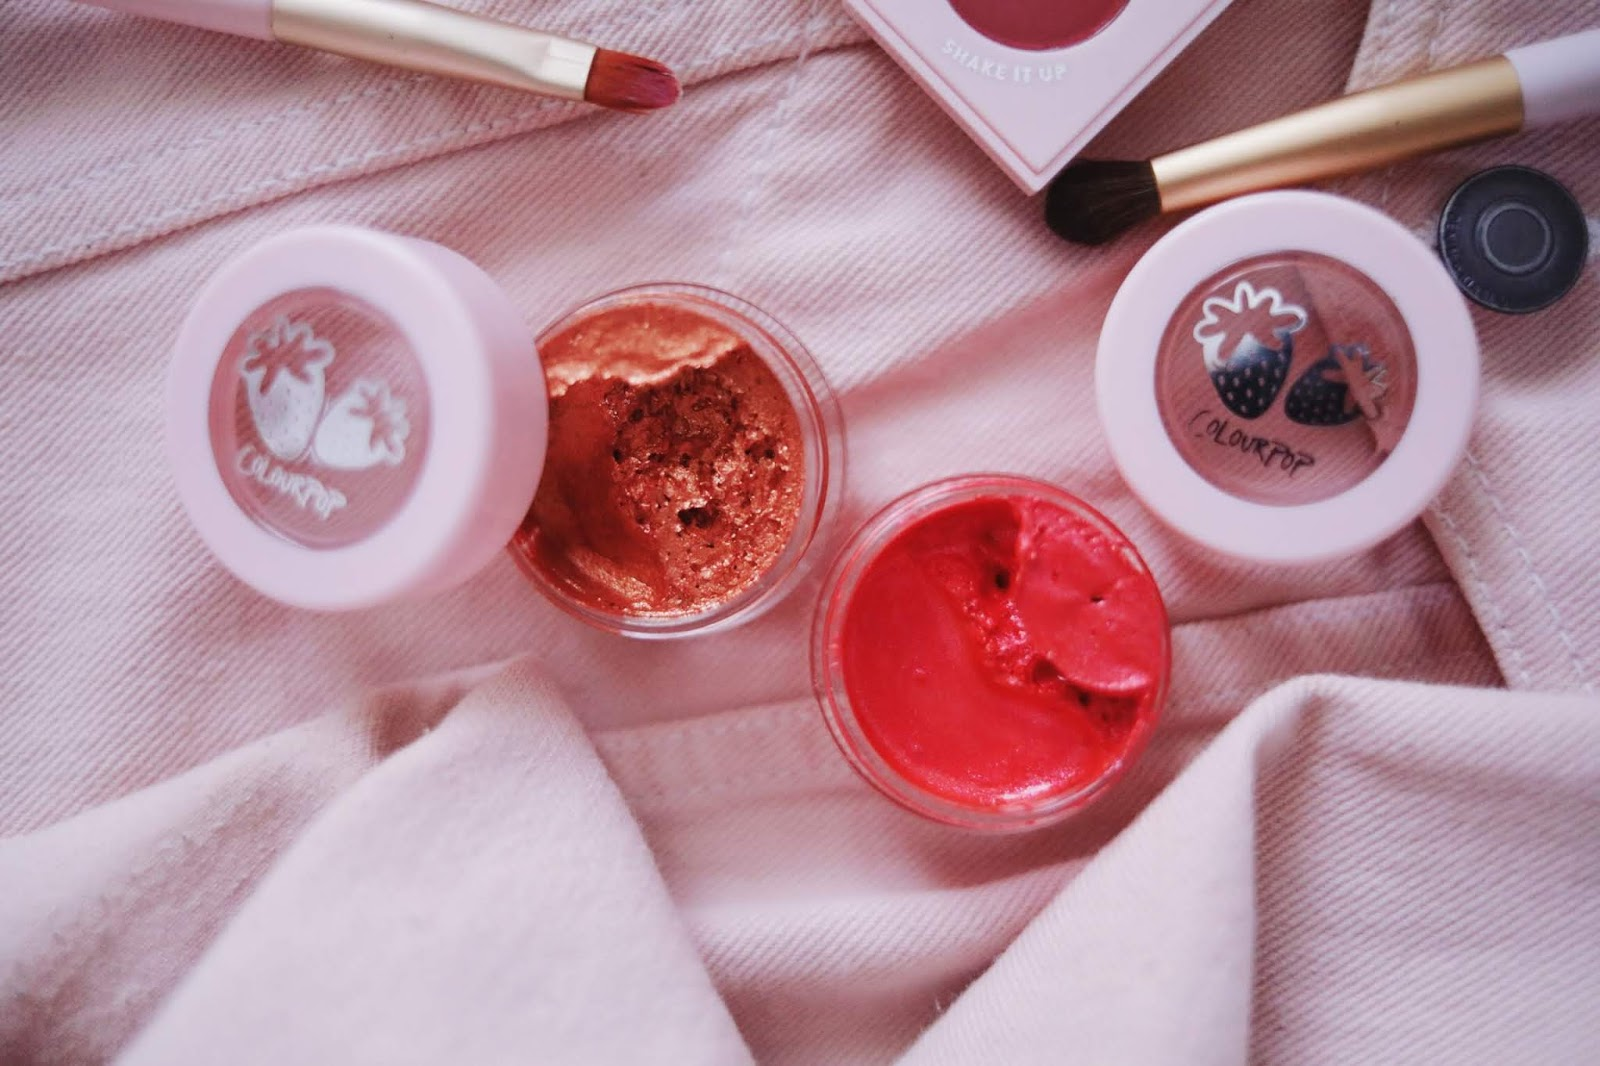 ColourPop , strawberry shake , strawberry collection , jelly Shadow , rose mademoiselle, rose mademoiselle, see u later , strawberry jam ,